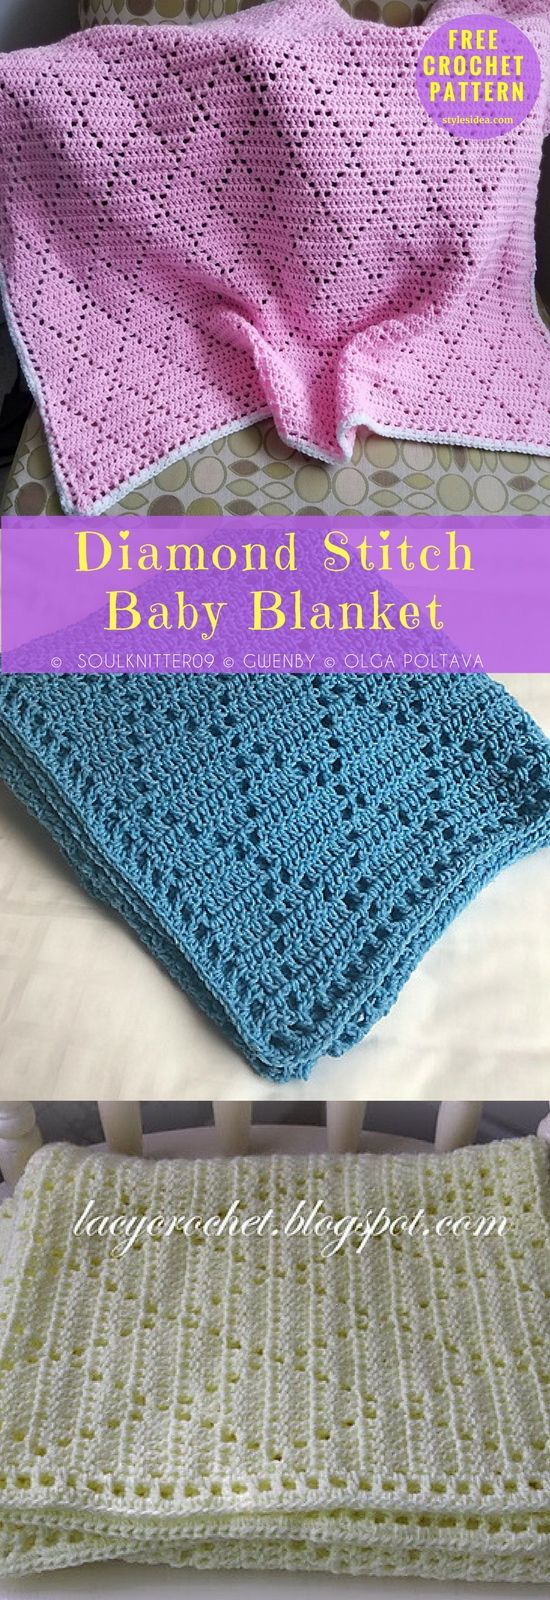 Diamond Stitch Baby Blanket Free Crochet Pattern | Pinterest ...